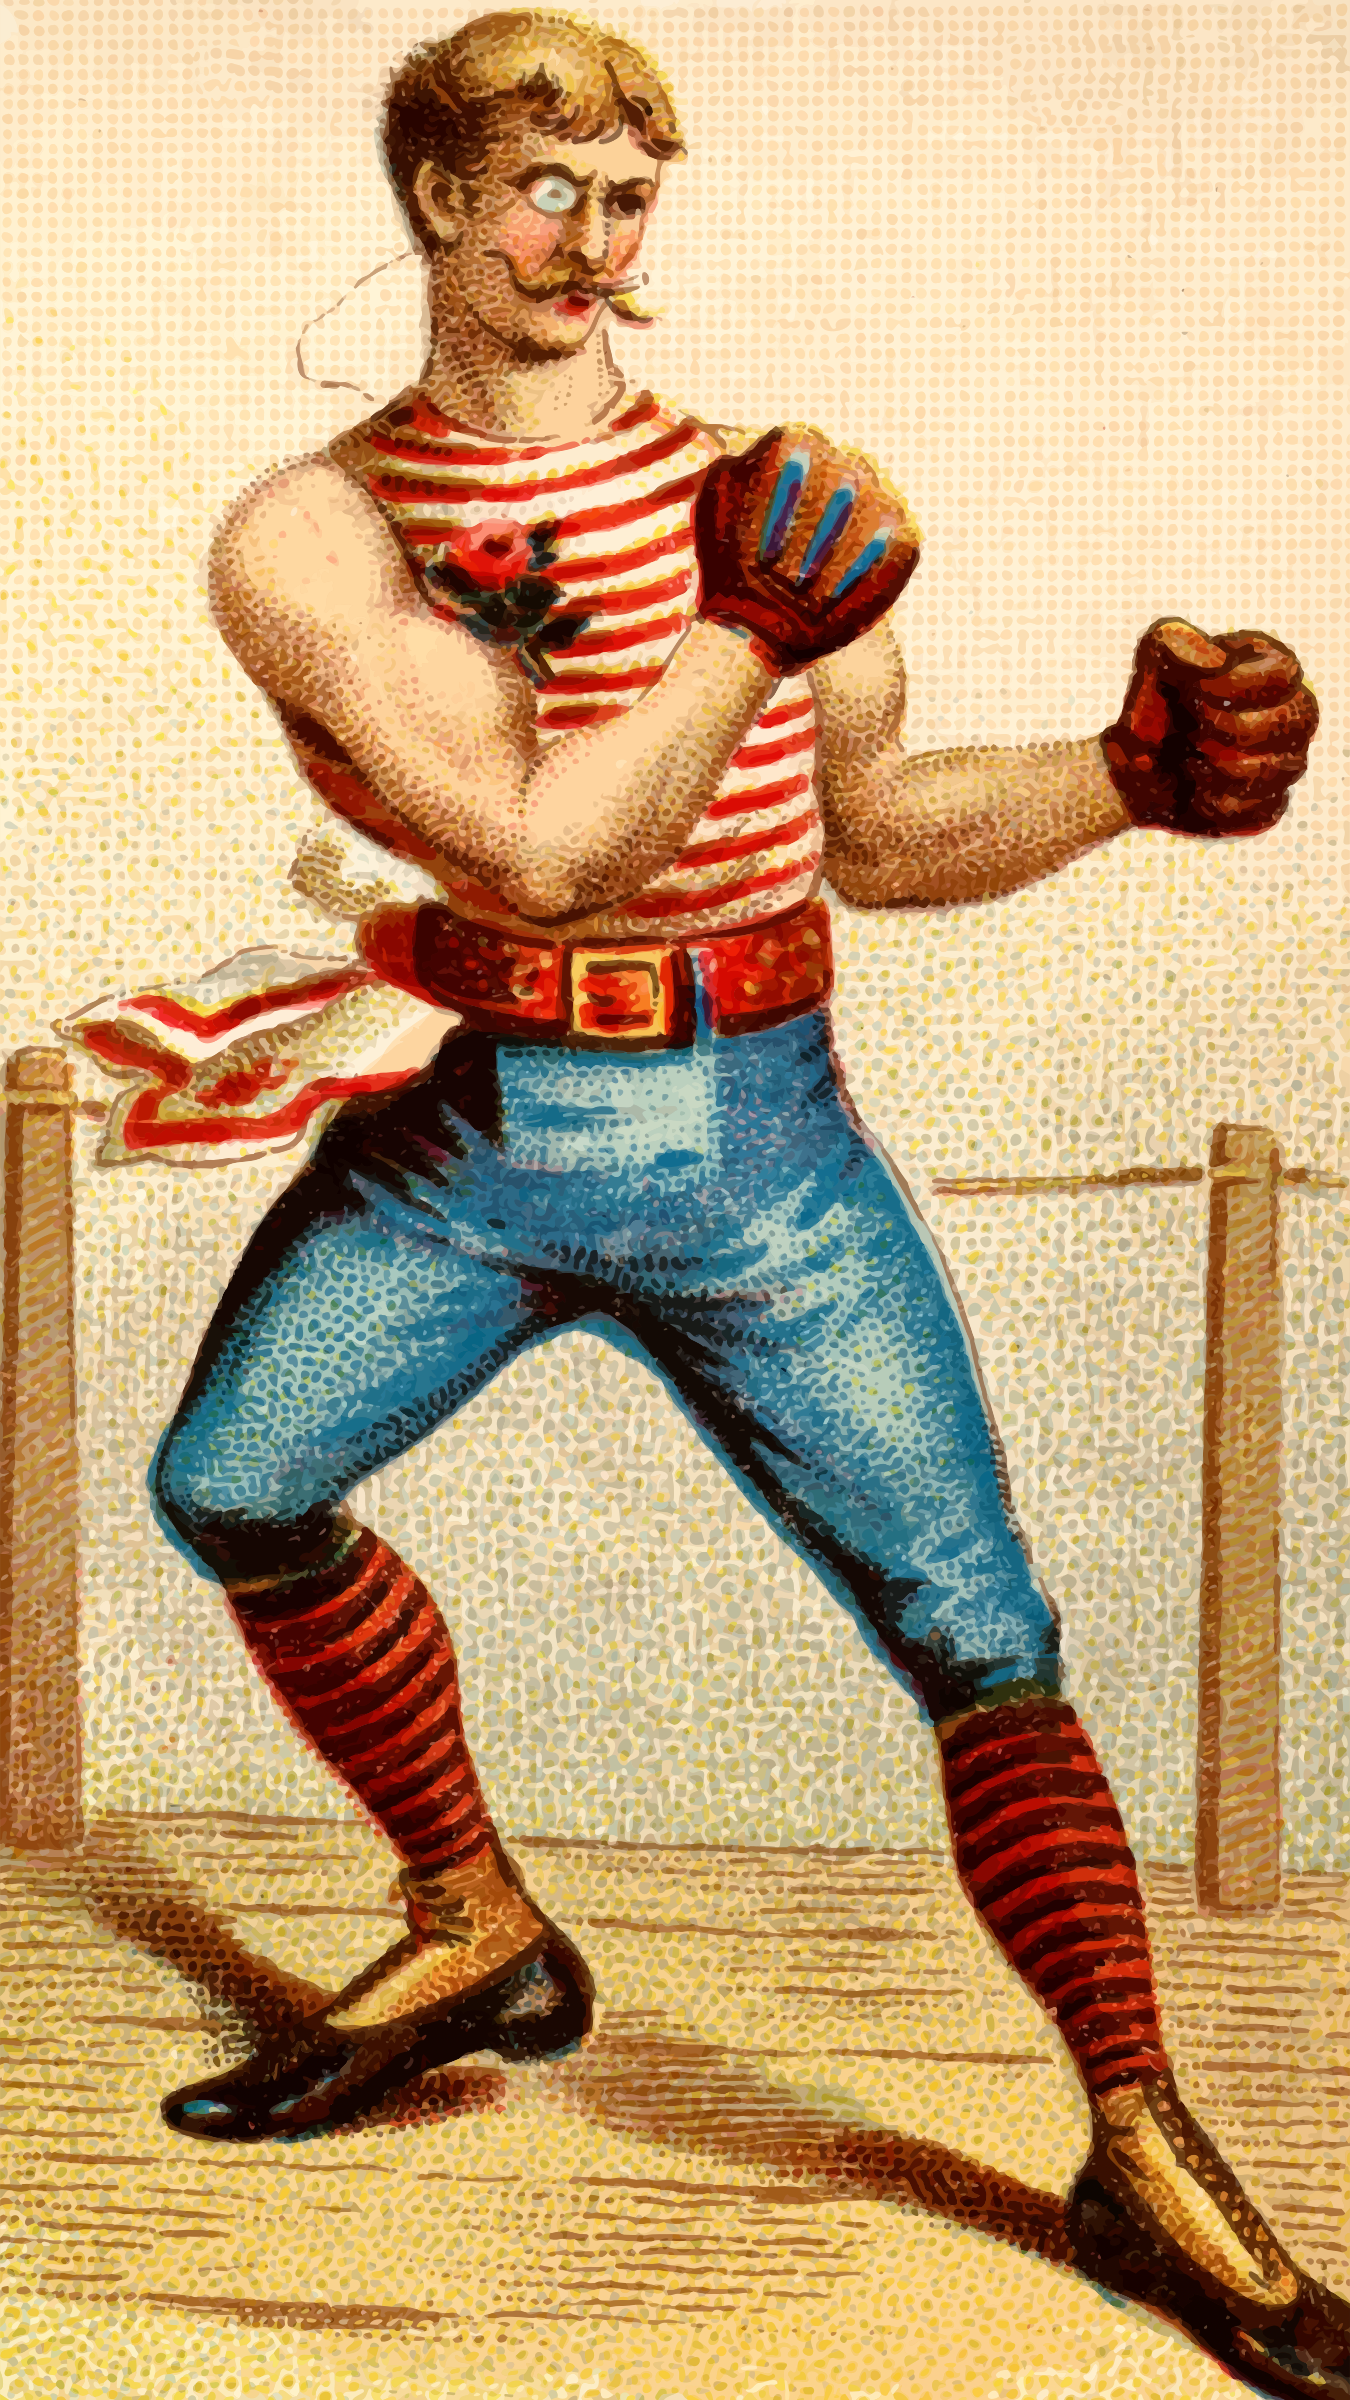 Cigarette card - Boxing by Firkin